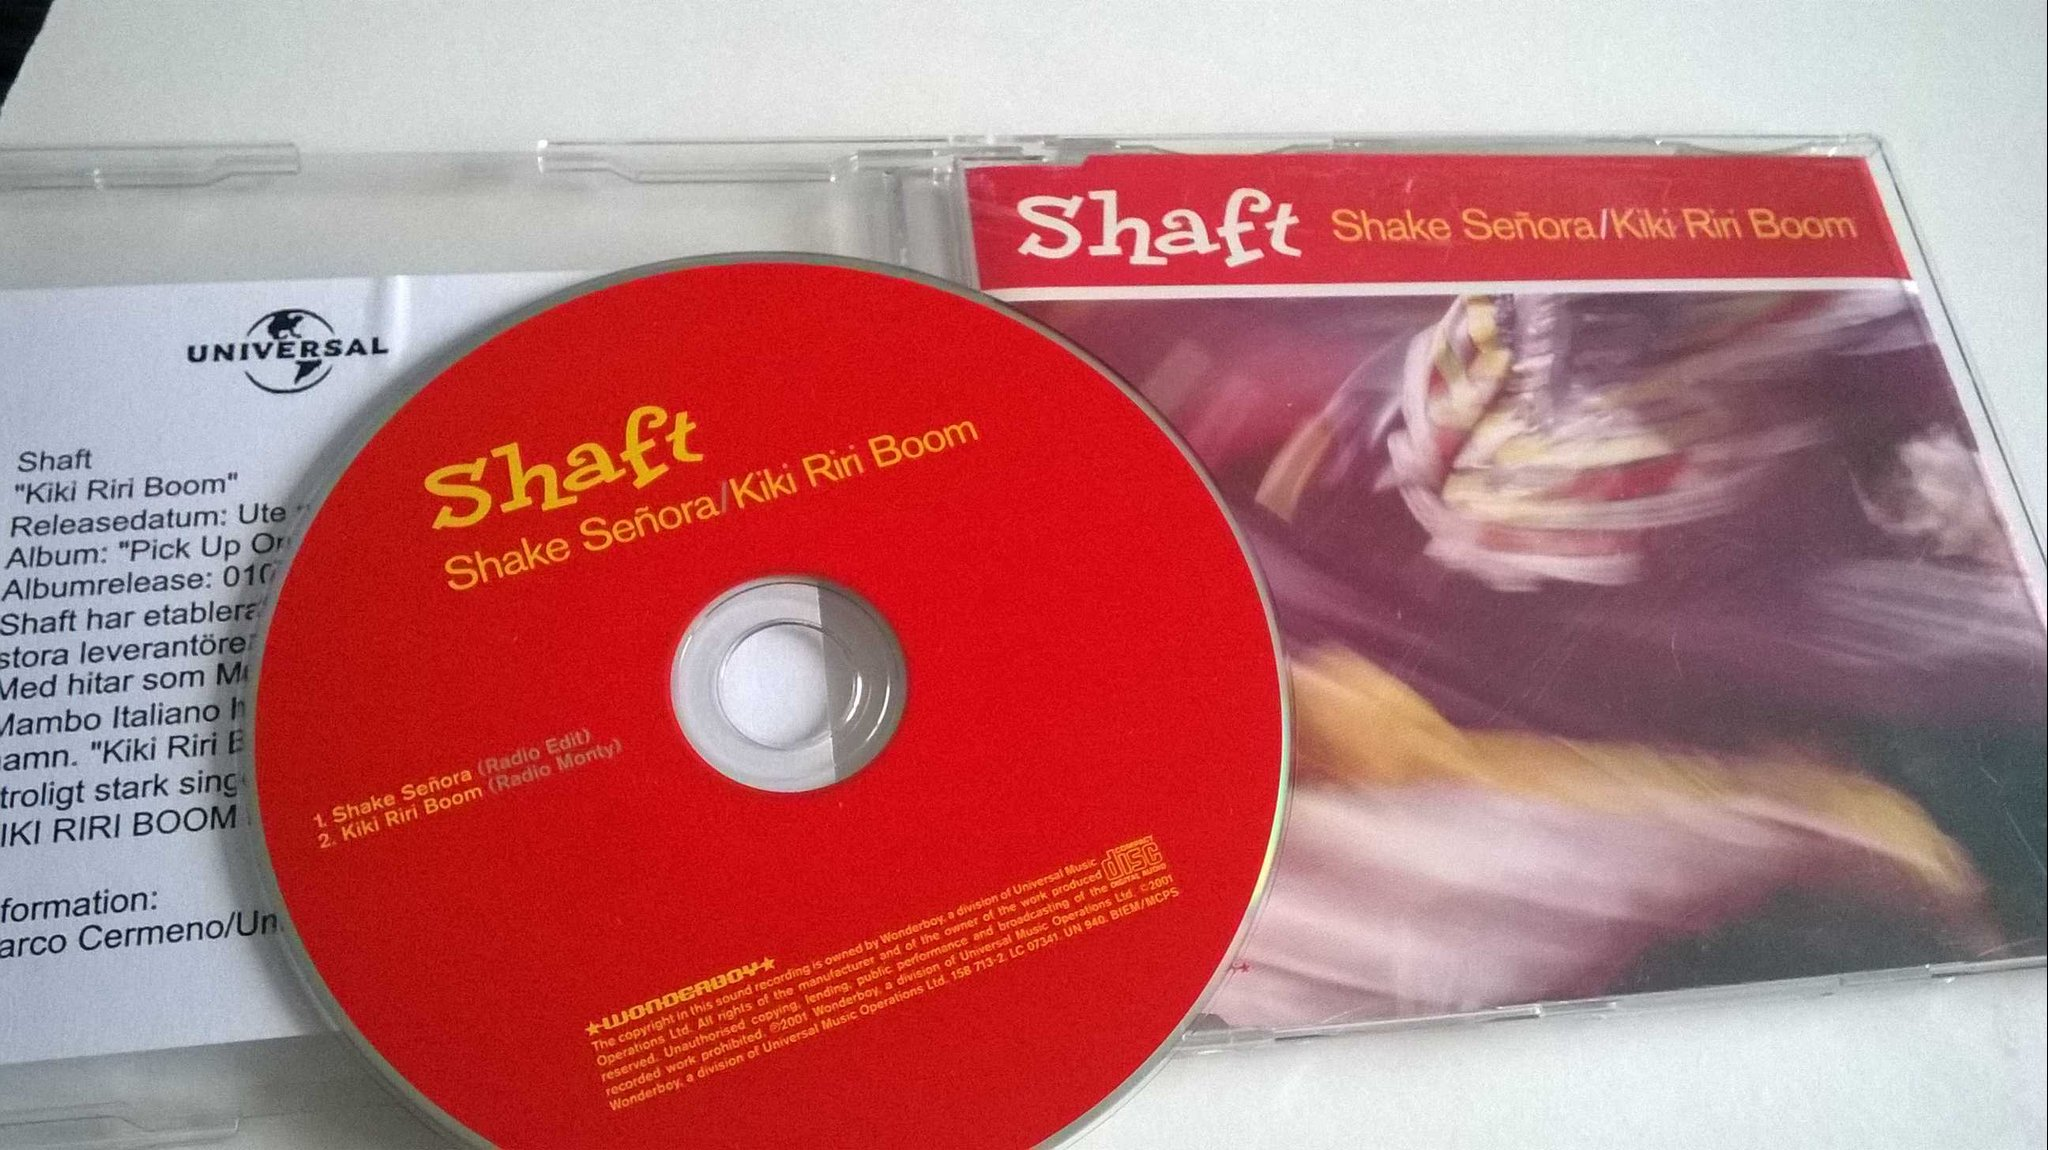 Shaft - Shake Señora / Kiki Riri Boom, CD, Single